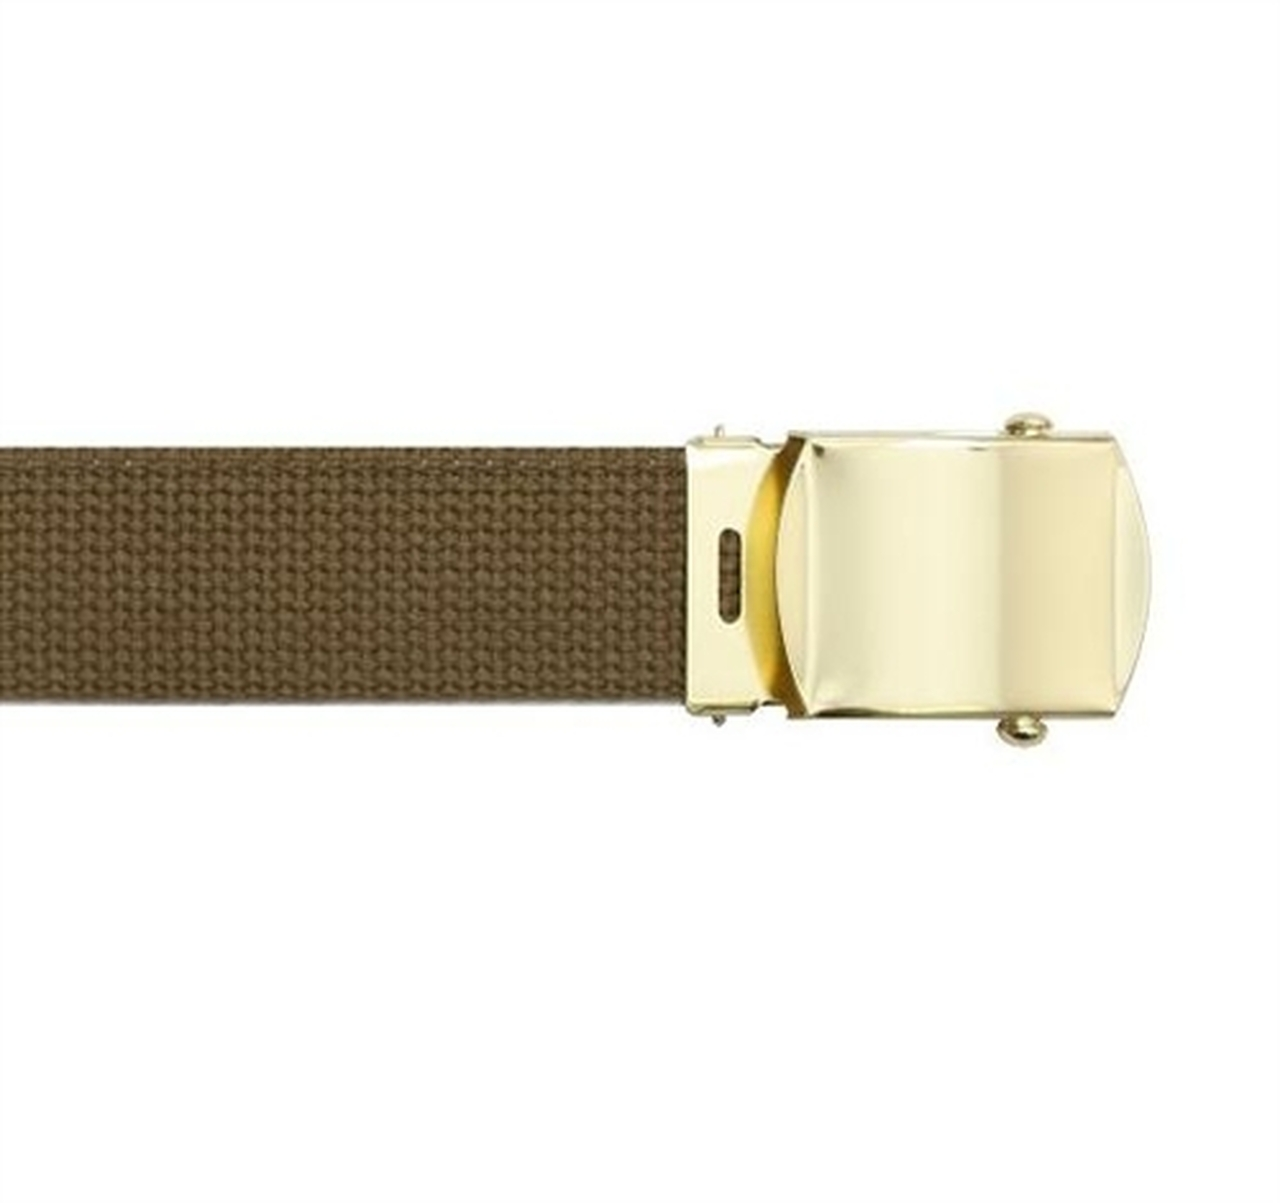 Military Web Belts from Hessen Tactical